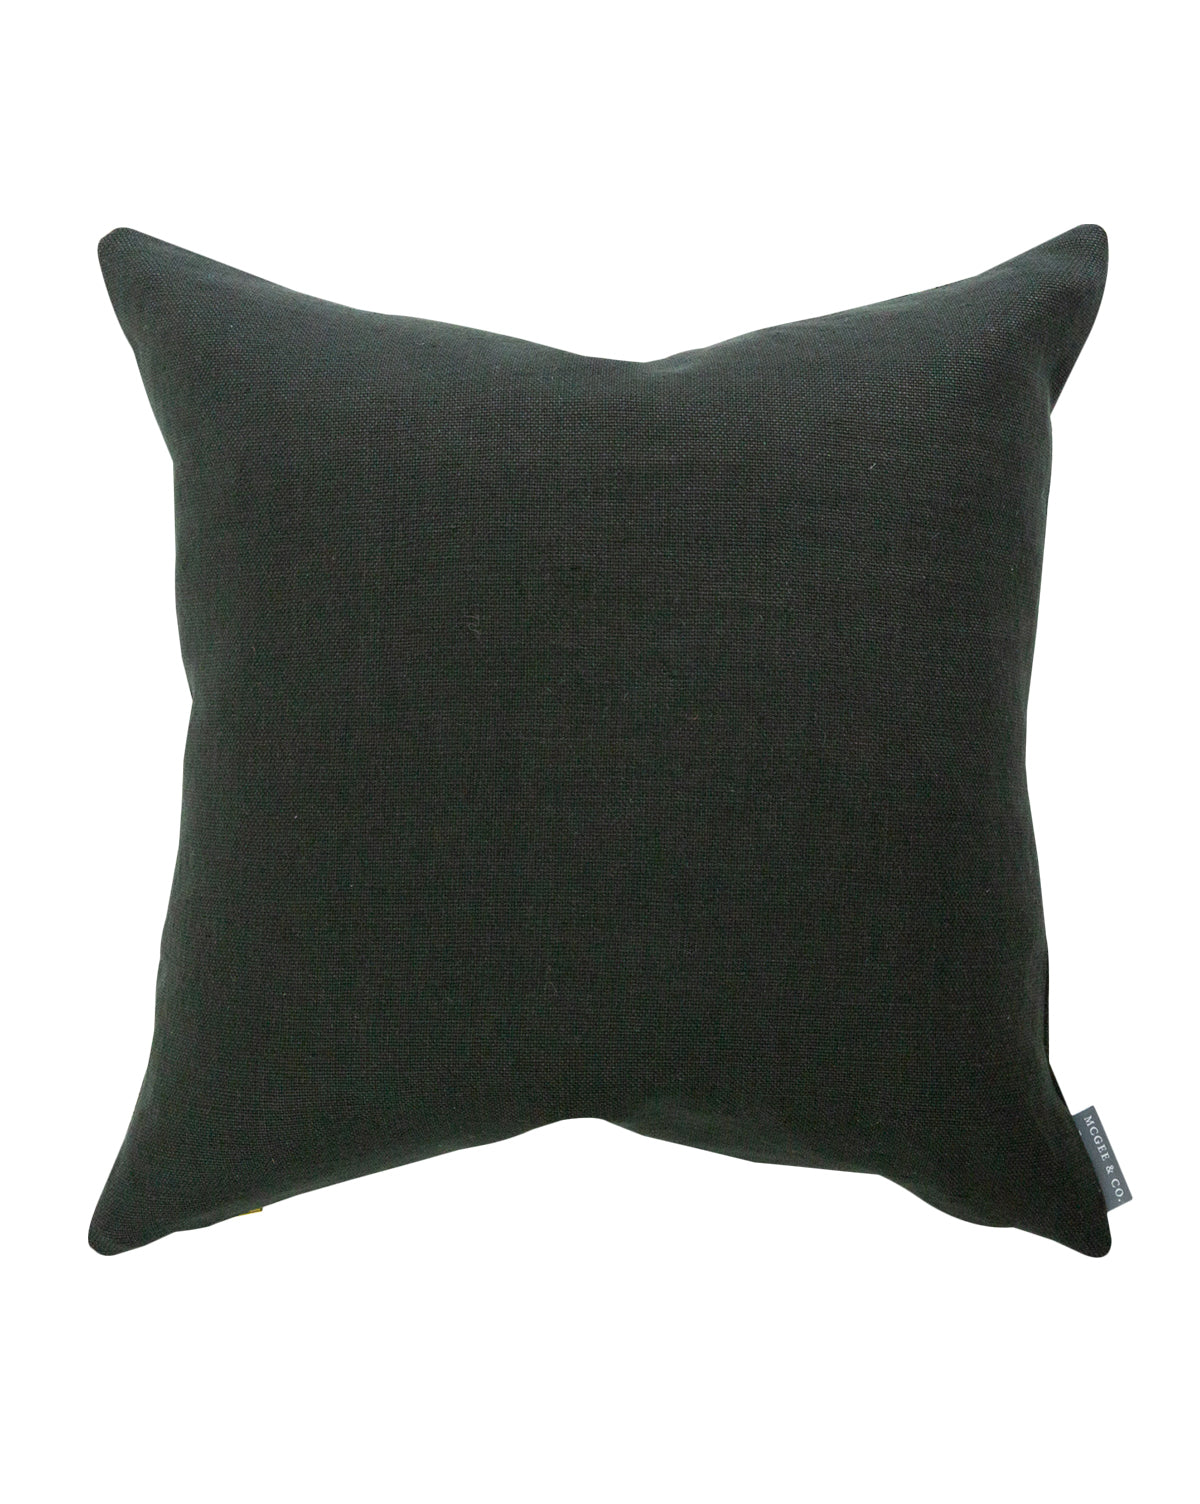 Bristol Fern Solid Pillow Cover